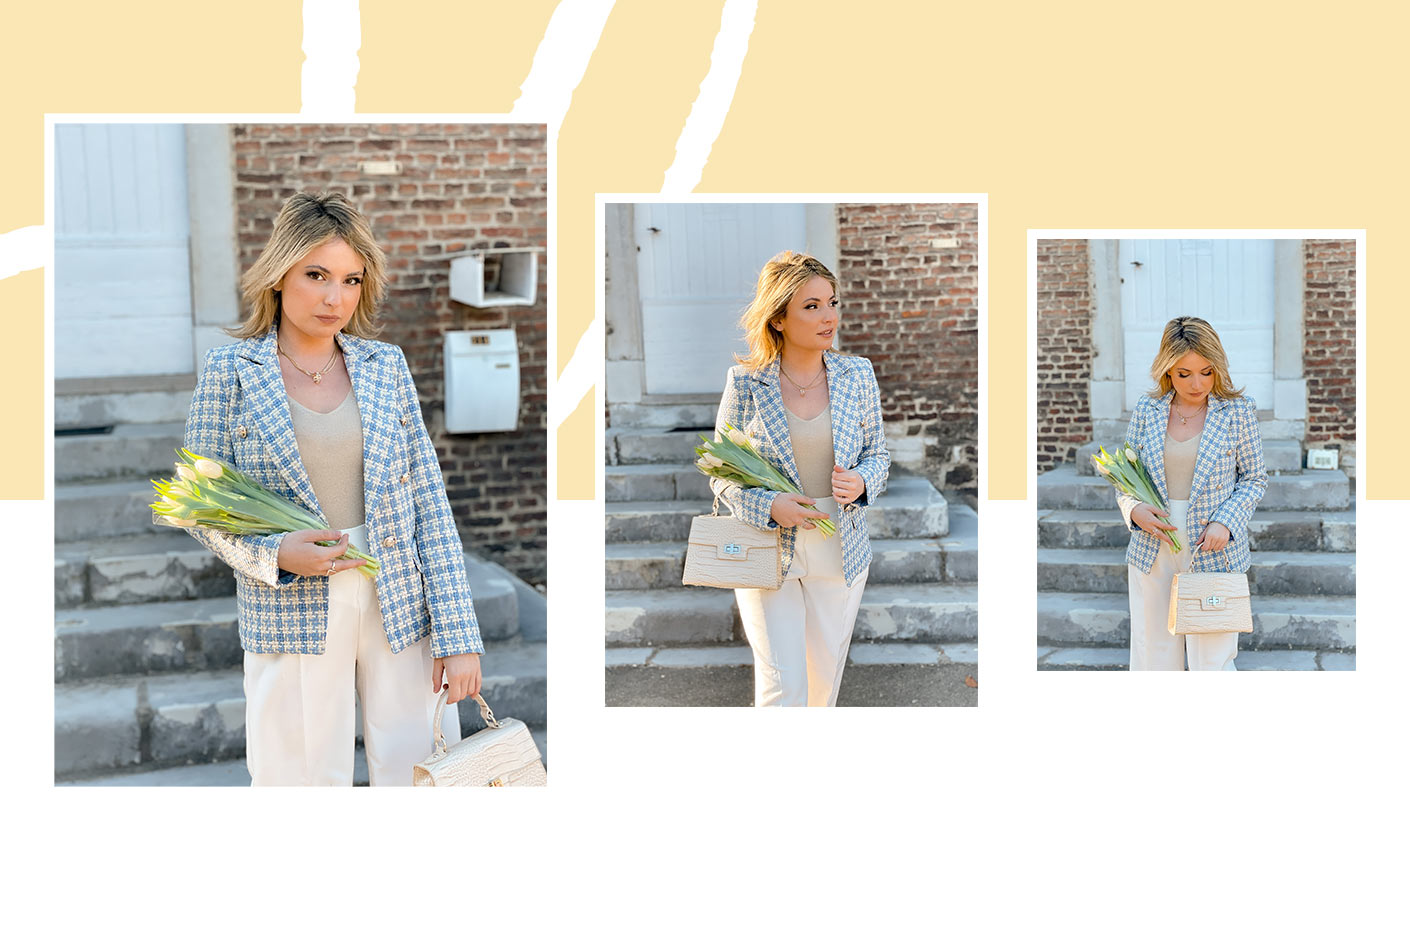 Alexa posing and smiling wearing our blue tweed blazer and a sleeveless lurex tank top with a white loose trousers with shiny buttons. Her outfit is accessorized with a small bag with crocodile pattern.